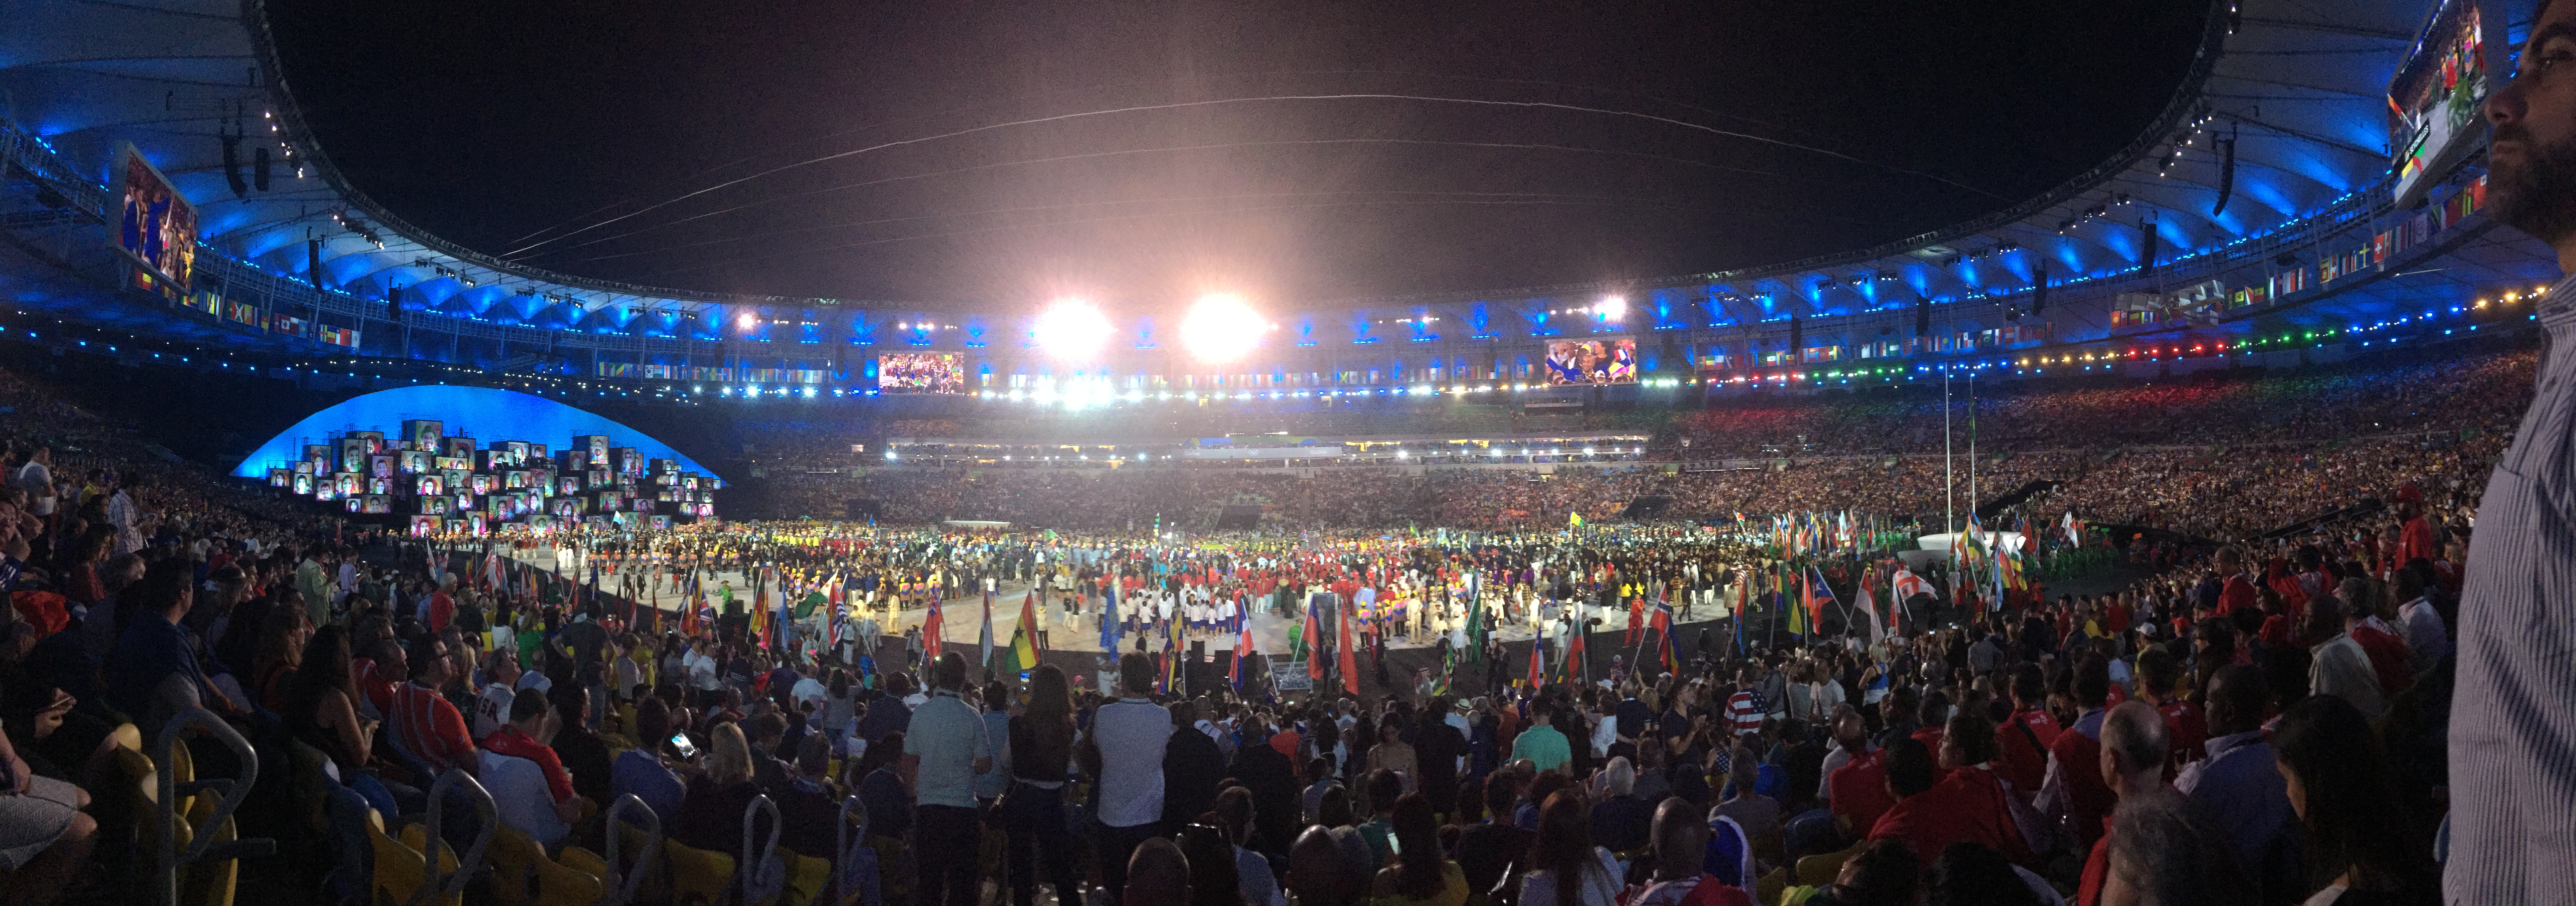 The Opening Ceremony at the 2016 Rio Olympics